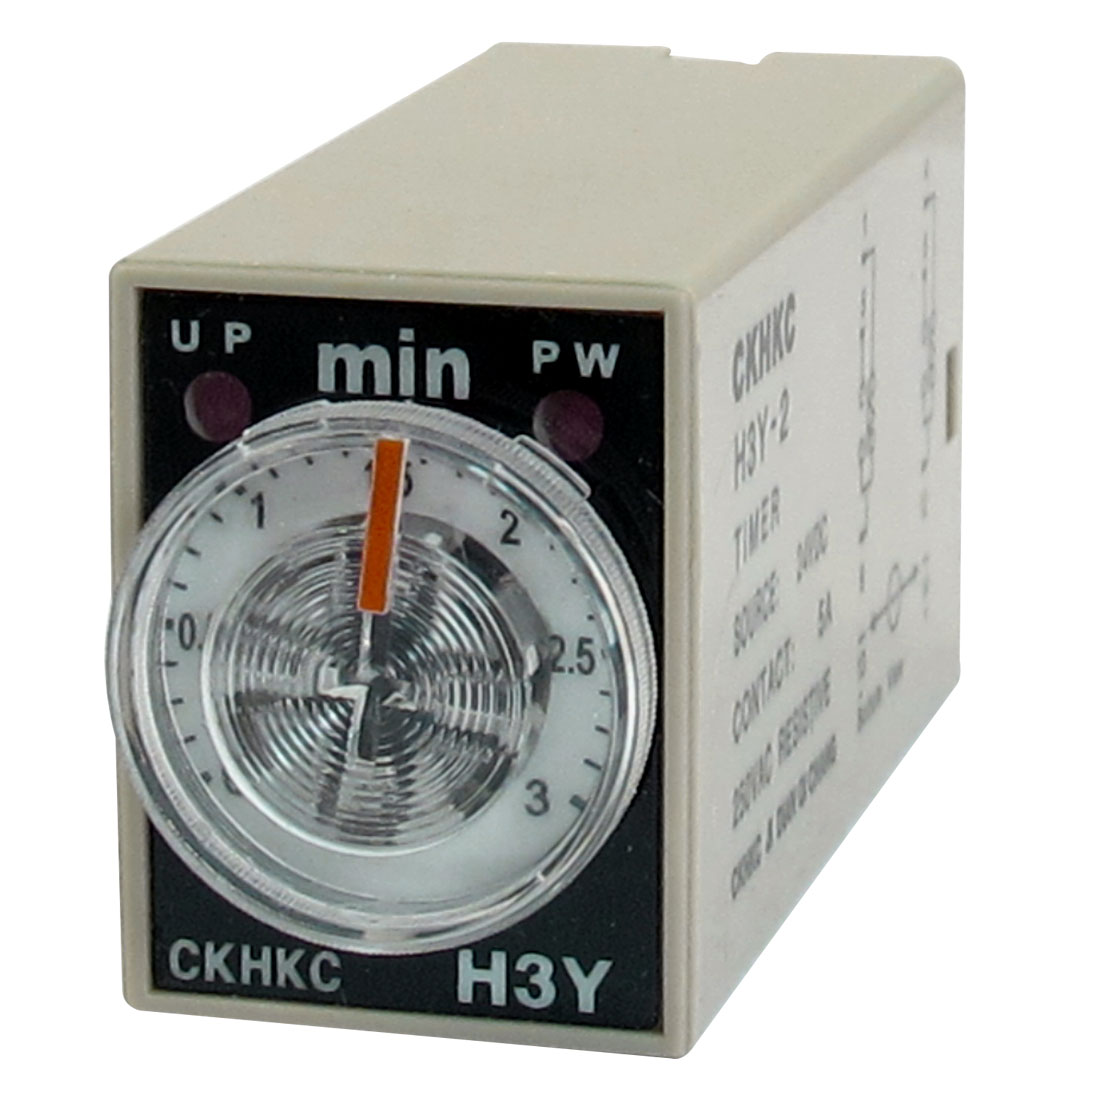 DC 24V 8 Pins Plug in DPDT 3 Minutes Delay Timer Time Relay H3Y-2